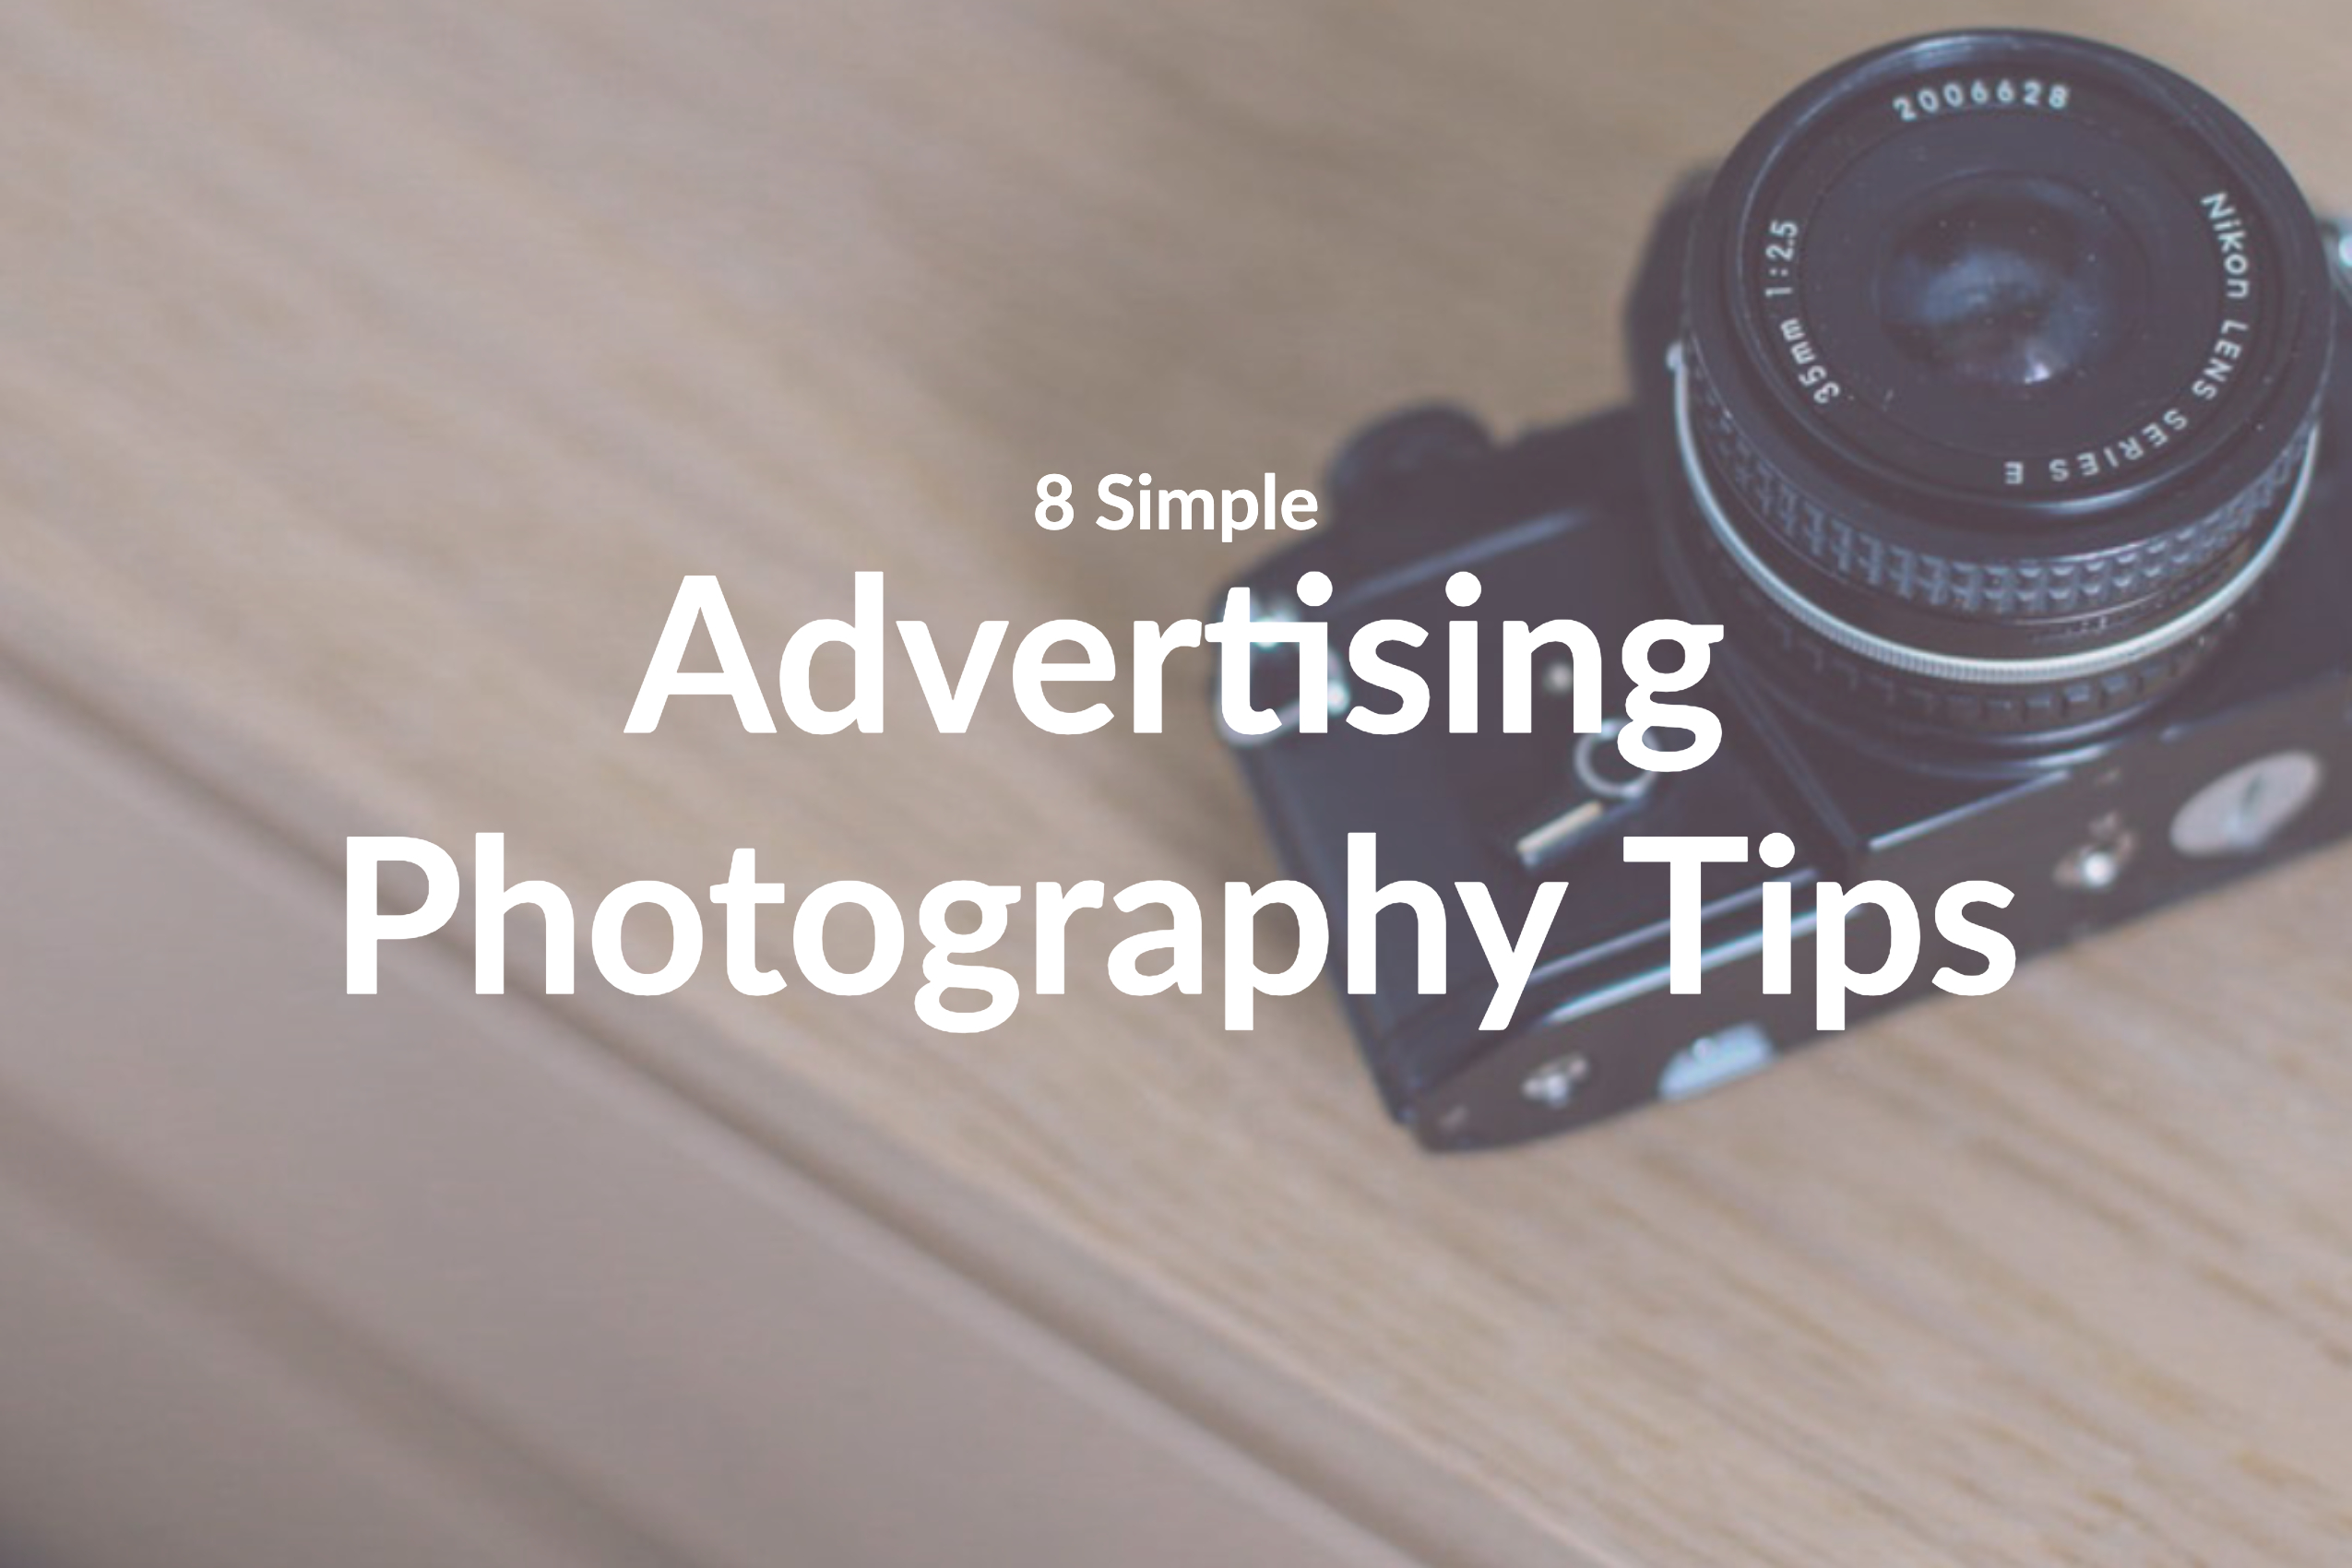 8 Simple Advertising Photography Tips You Need to Use Today